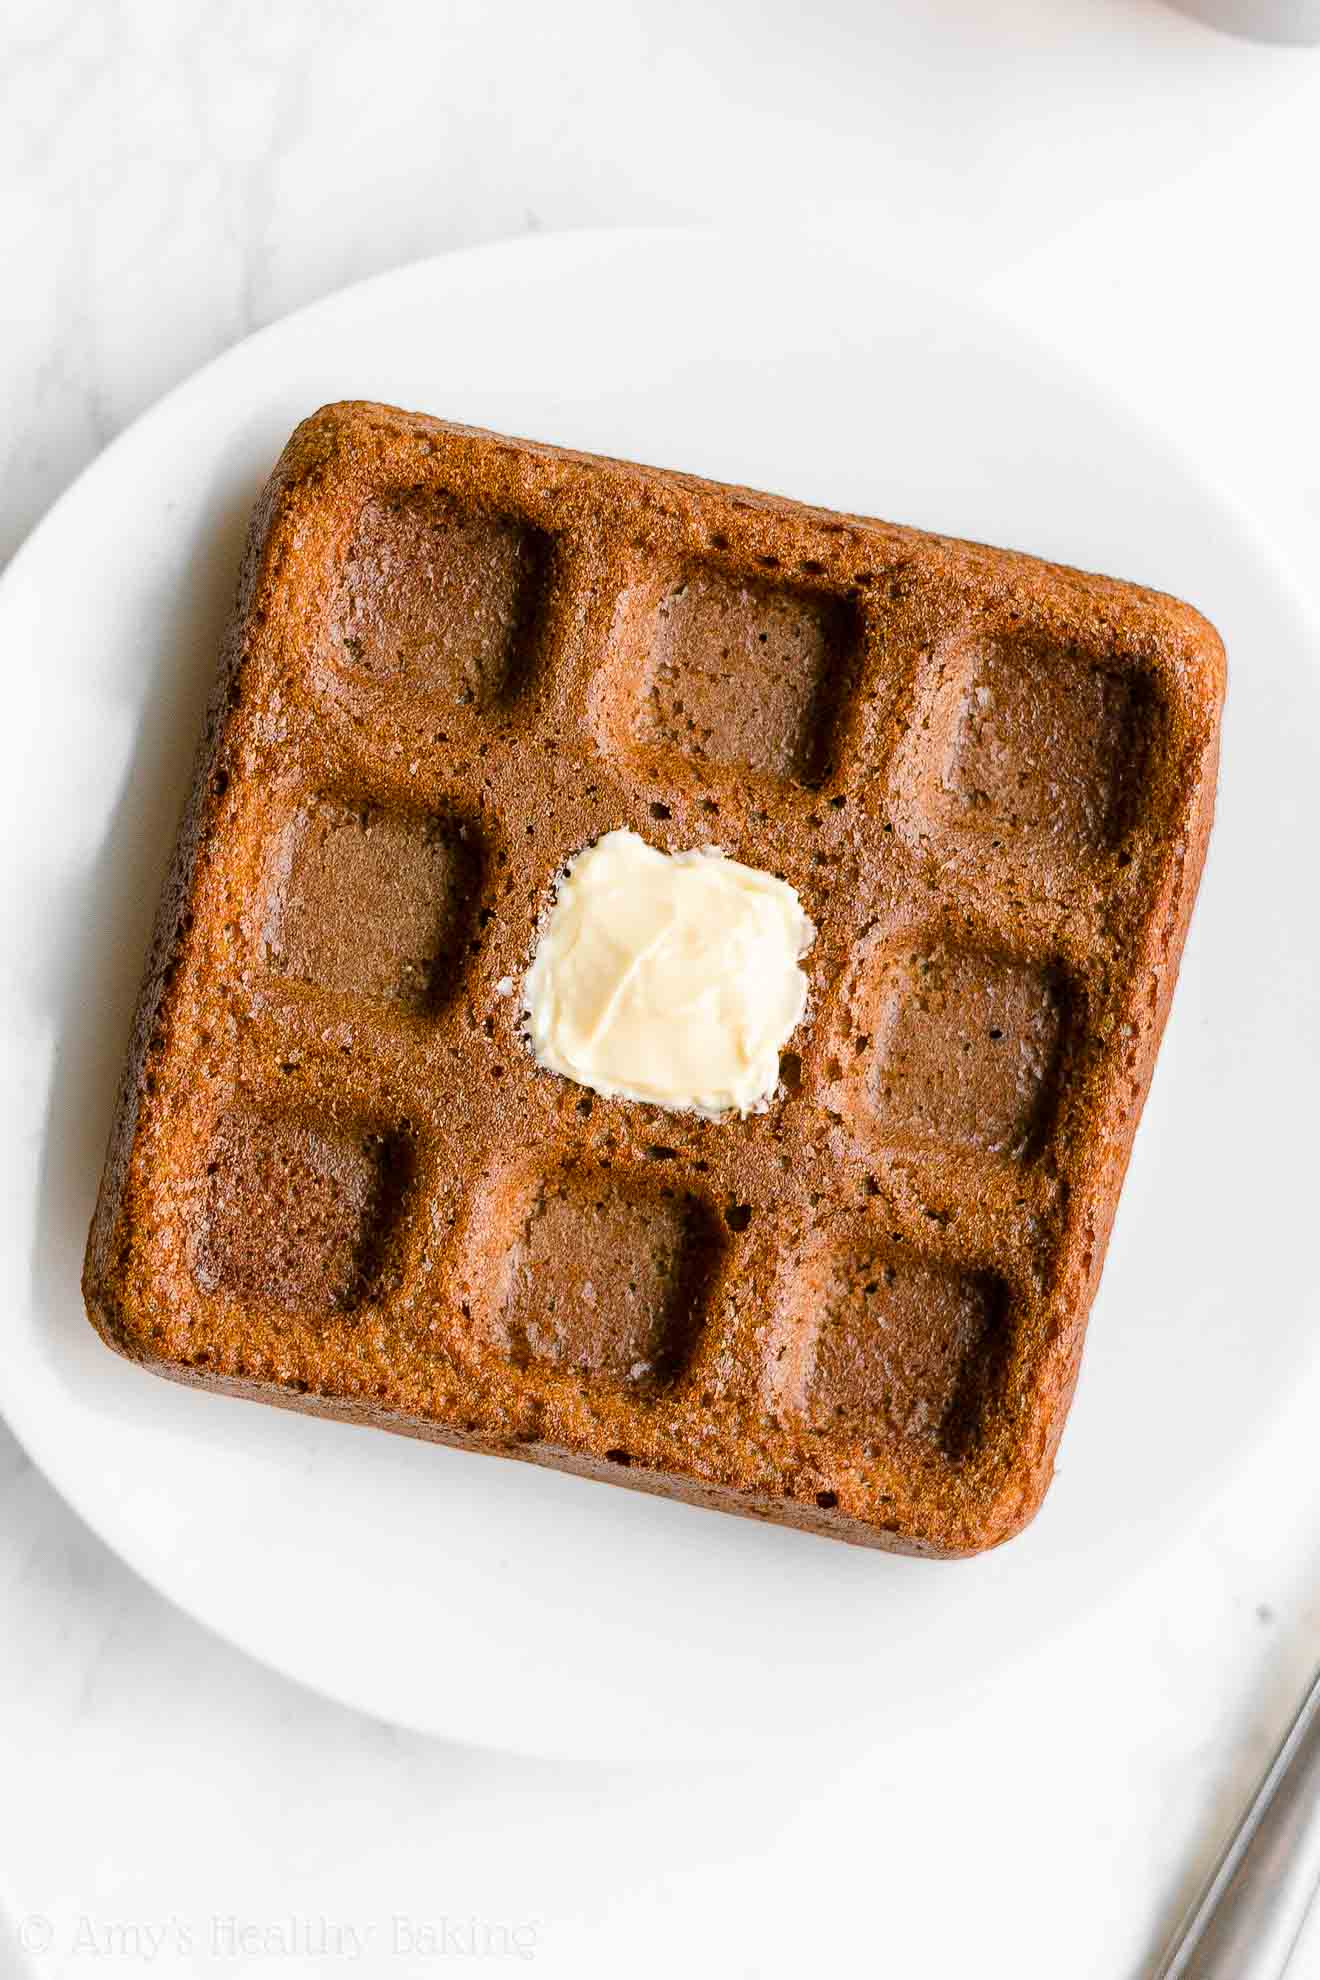 Easy Healthy Clean Eating Gluten Free Crispy Fluffy Gingerbread Waffles